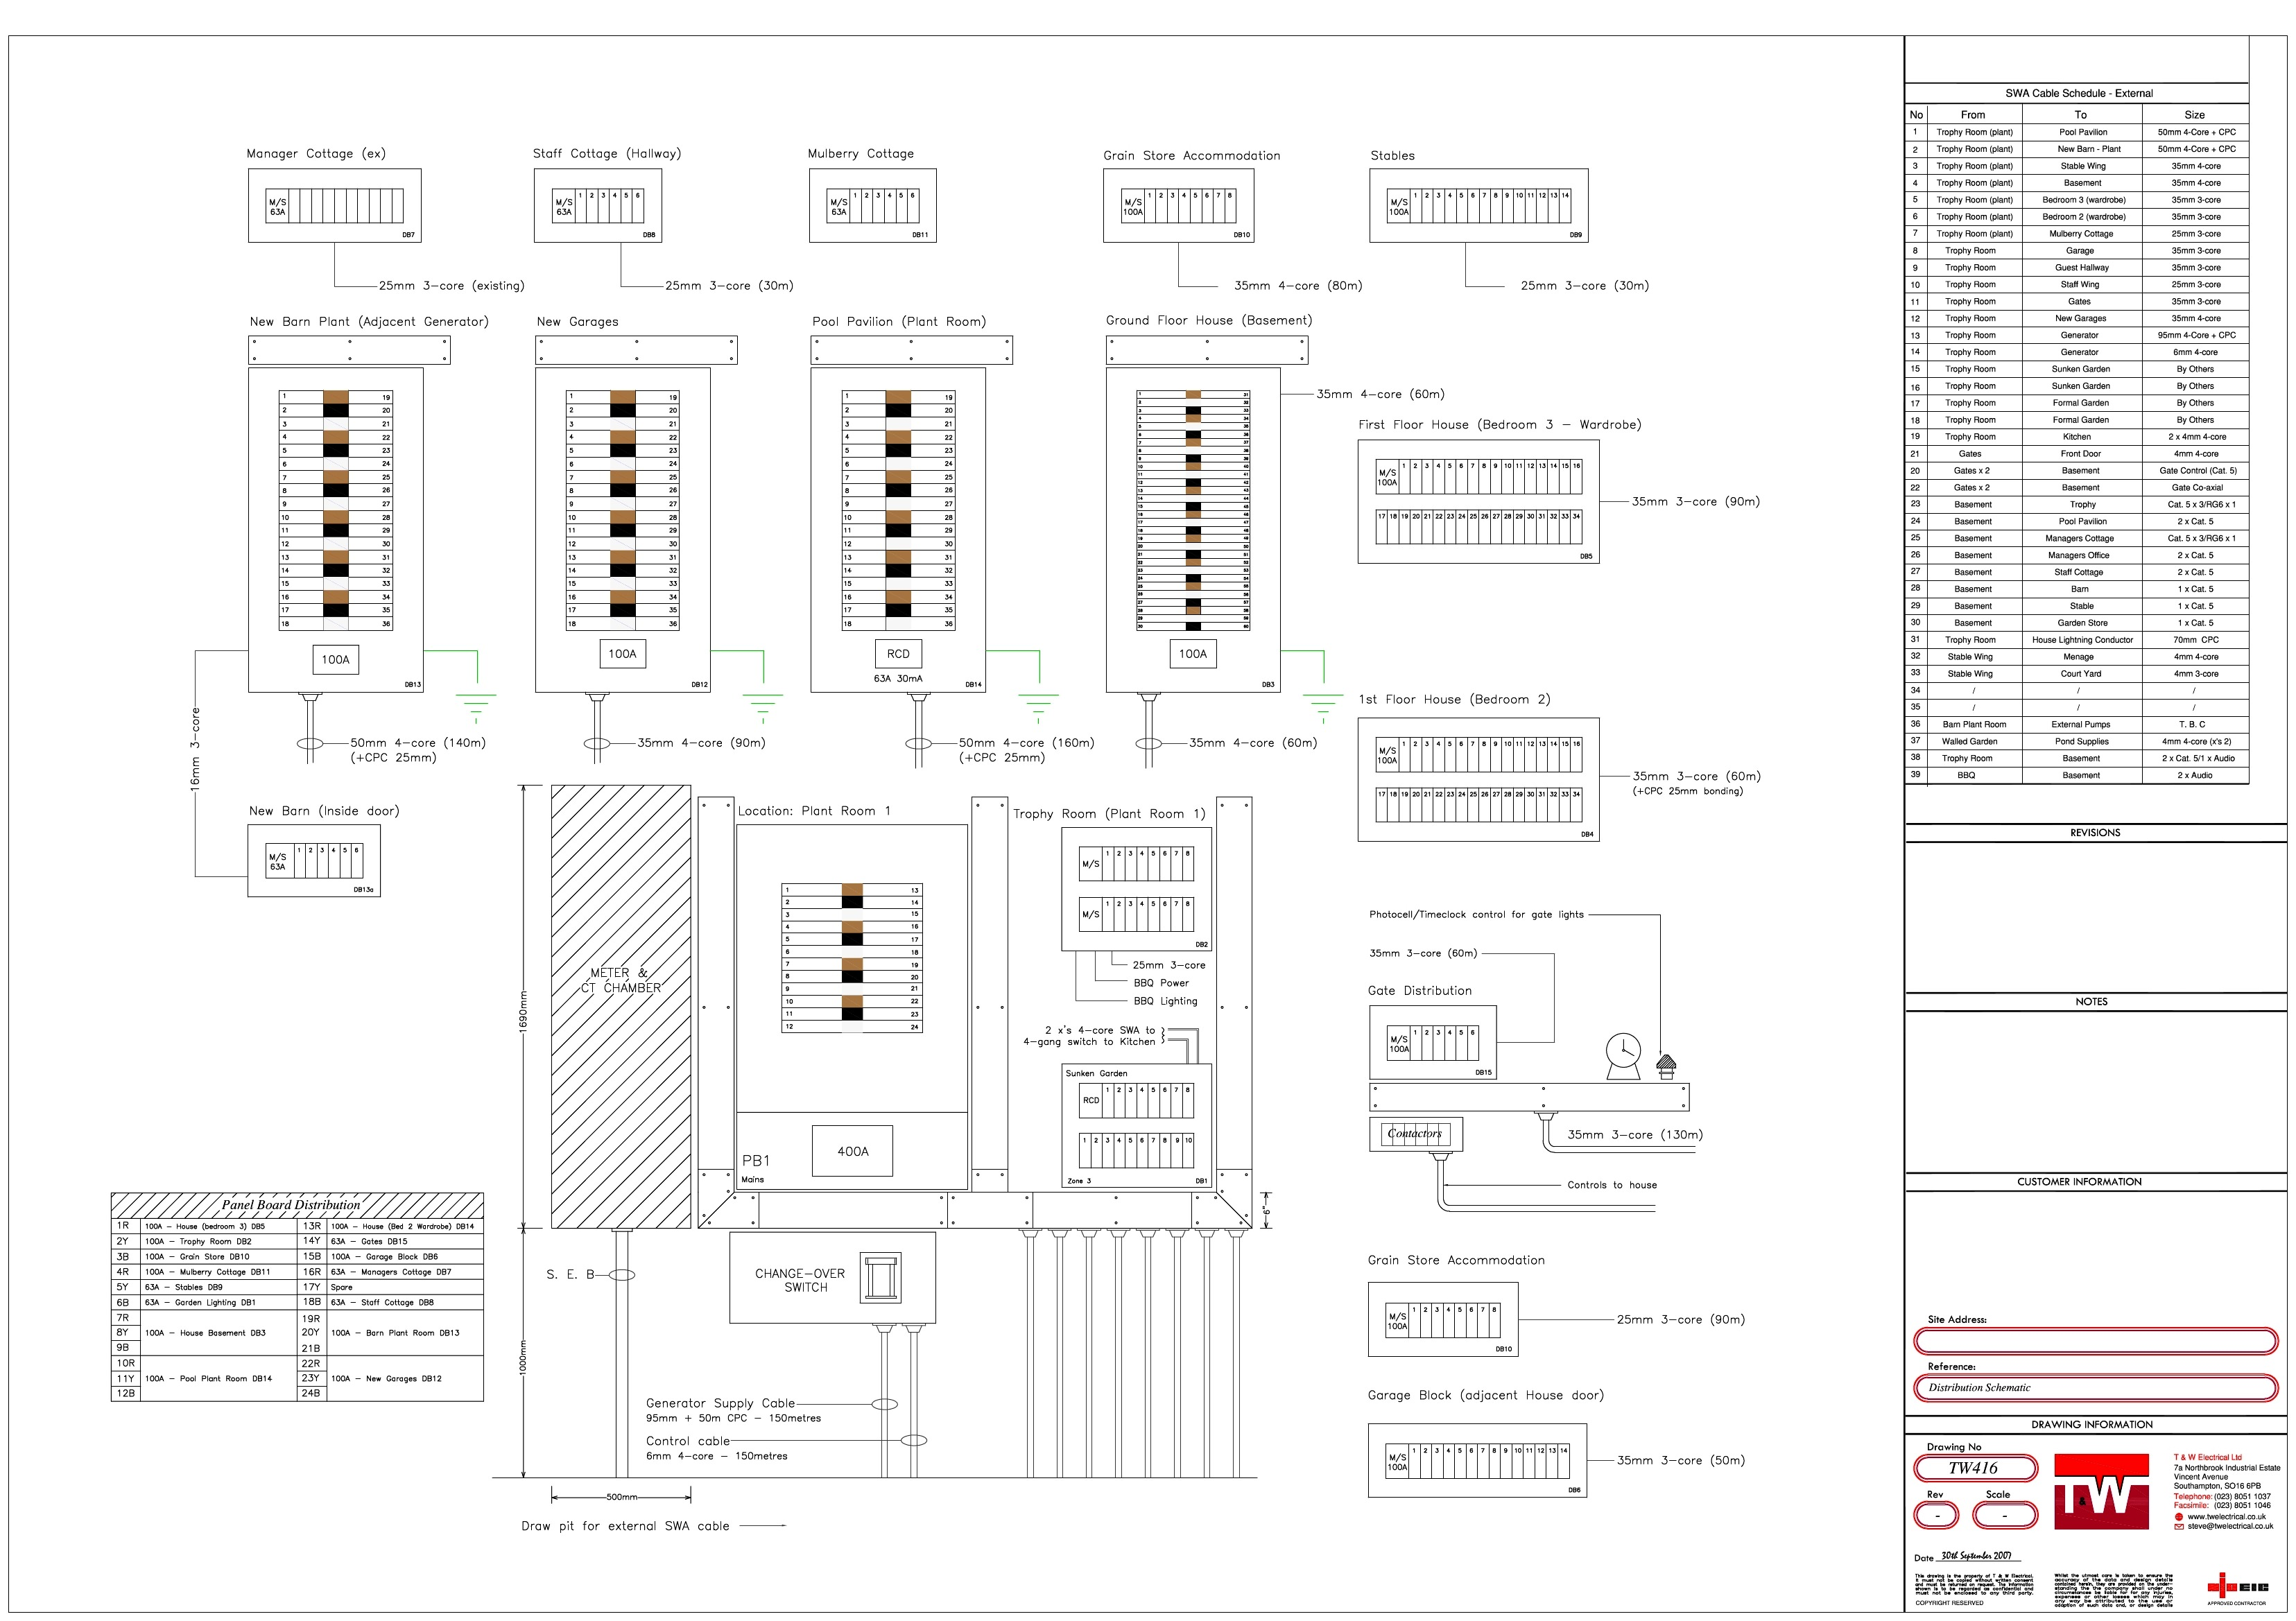 electrical wiring diagram uk opel corsa d drawing symbols nz  the